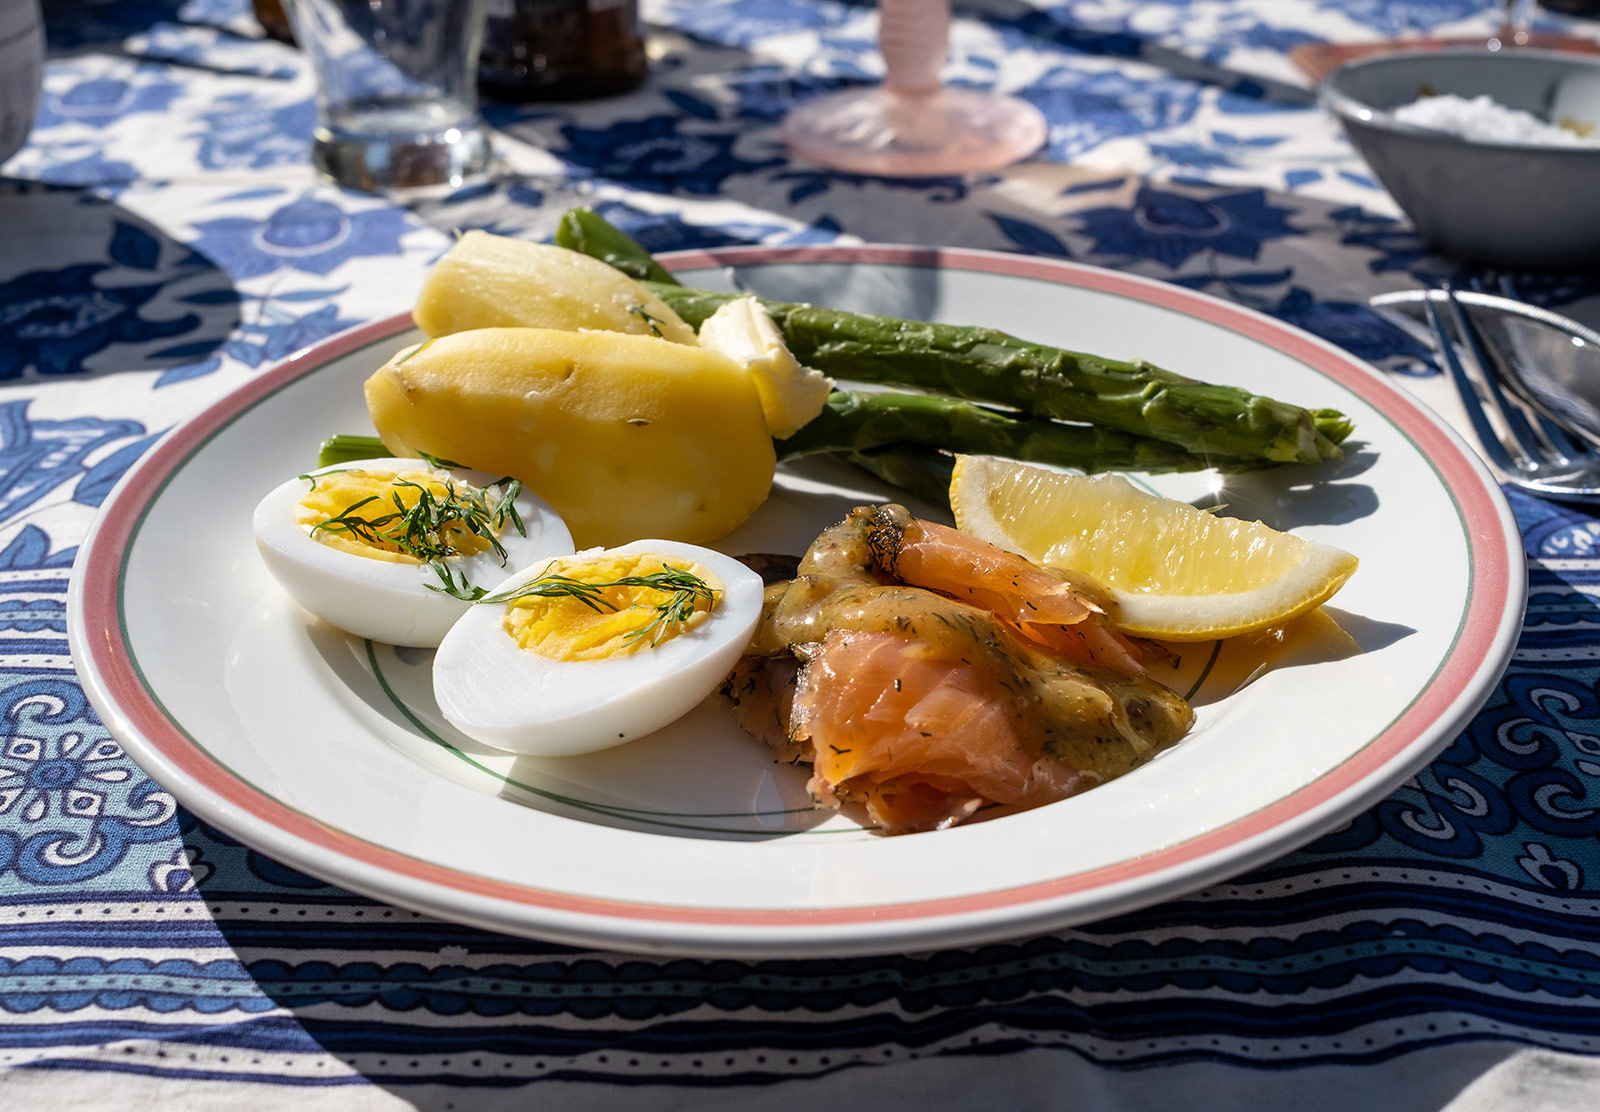 Salmon, potato, eggs and asparagus